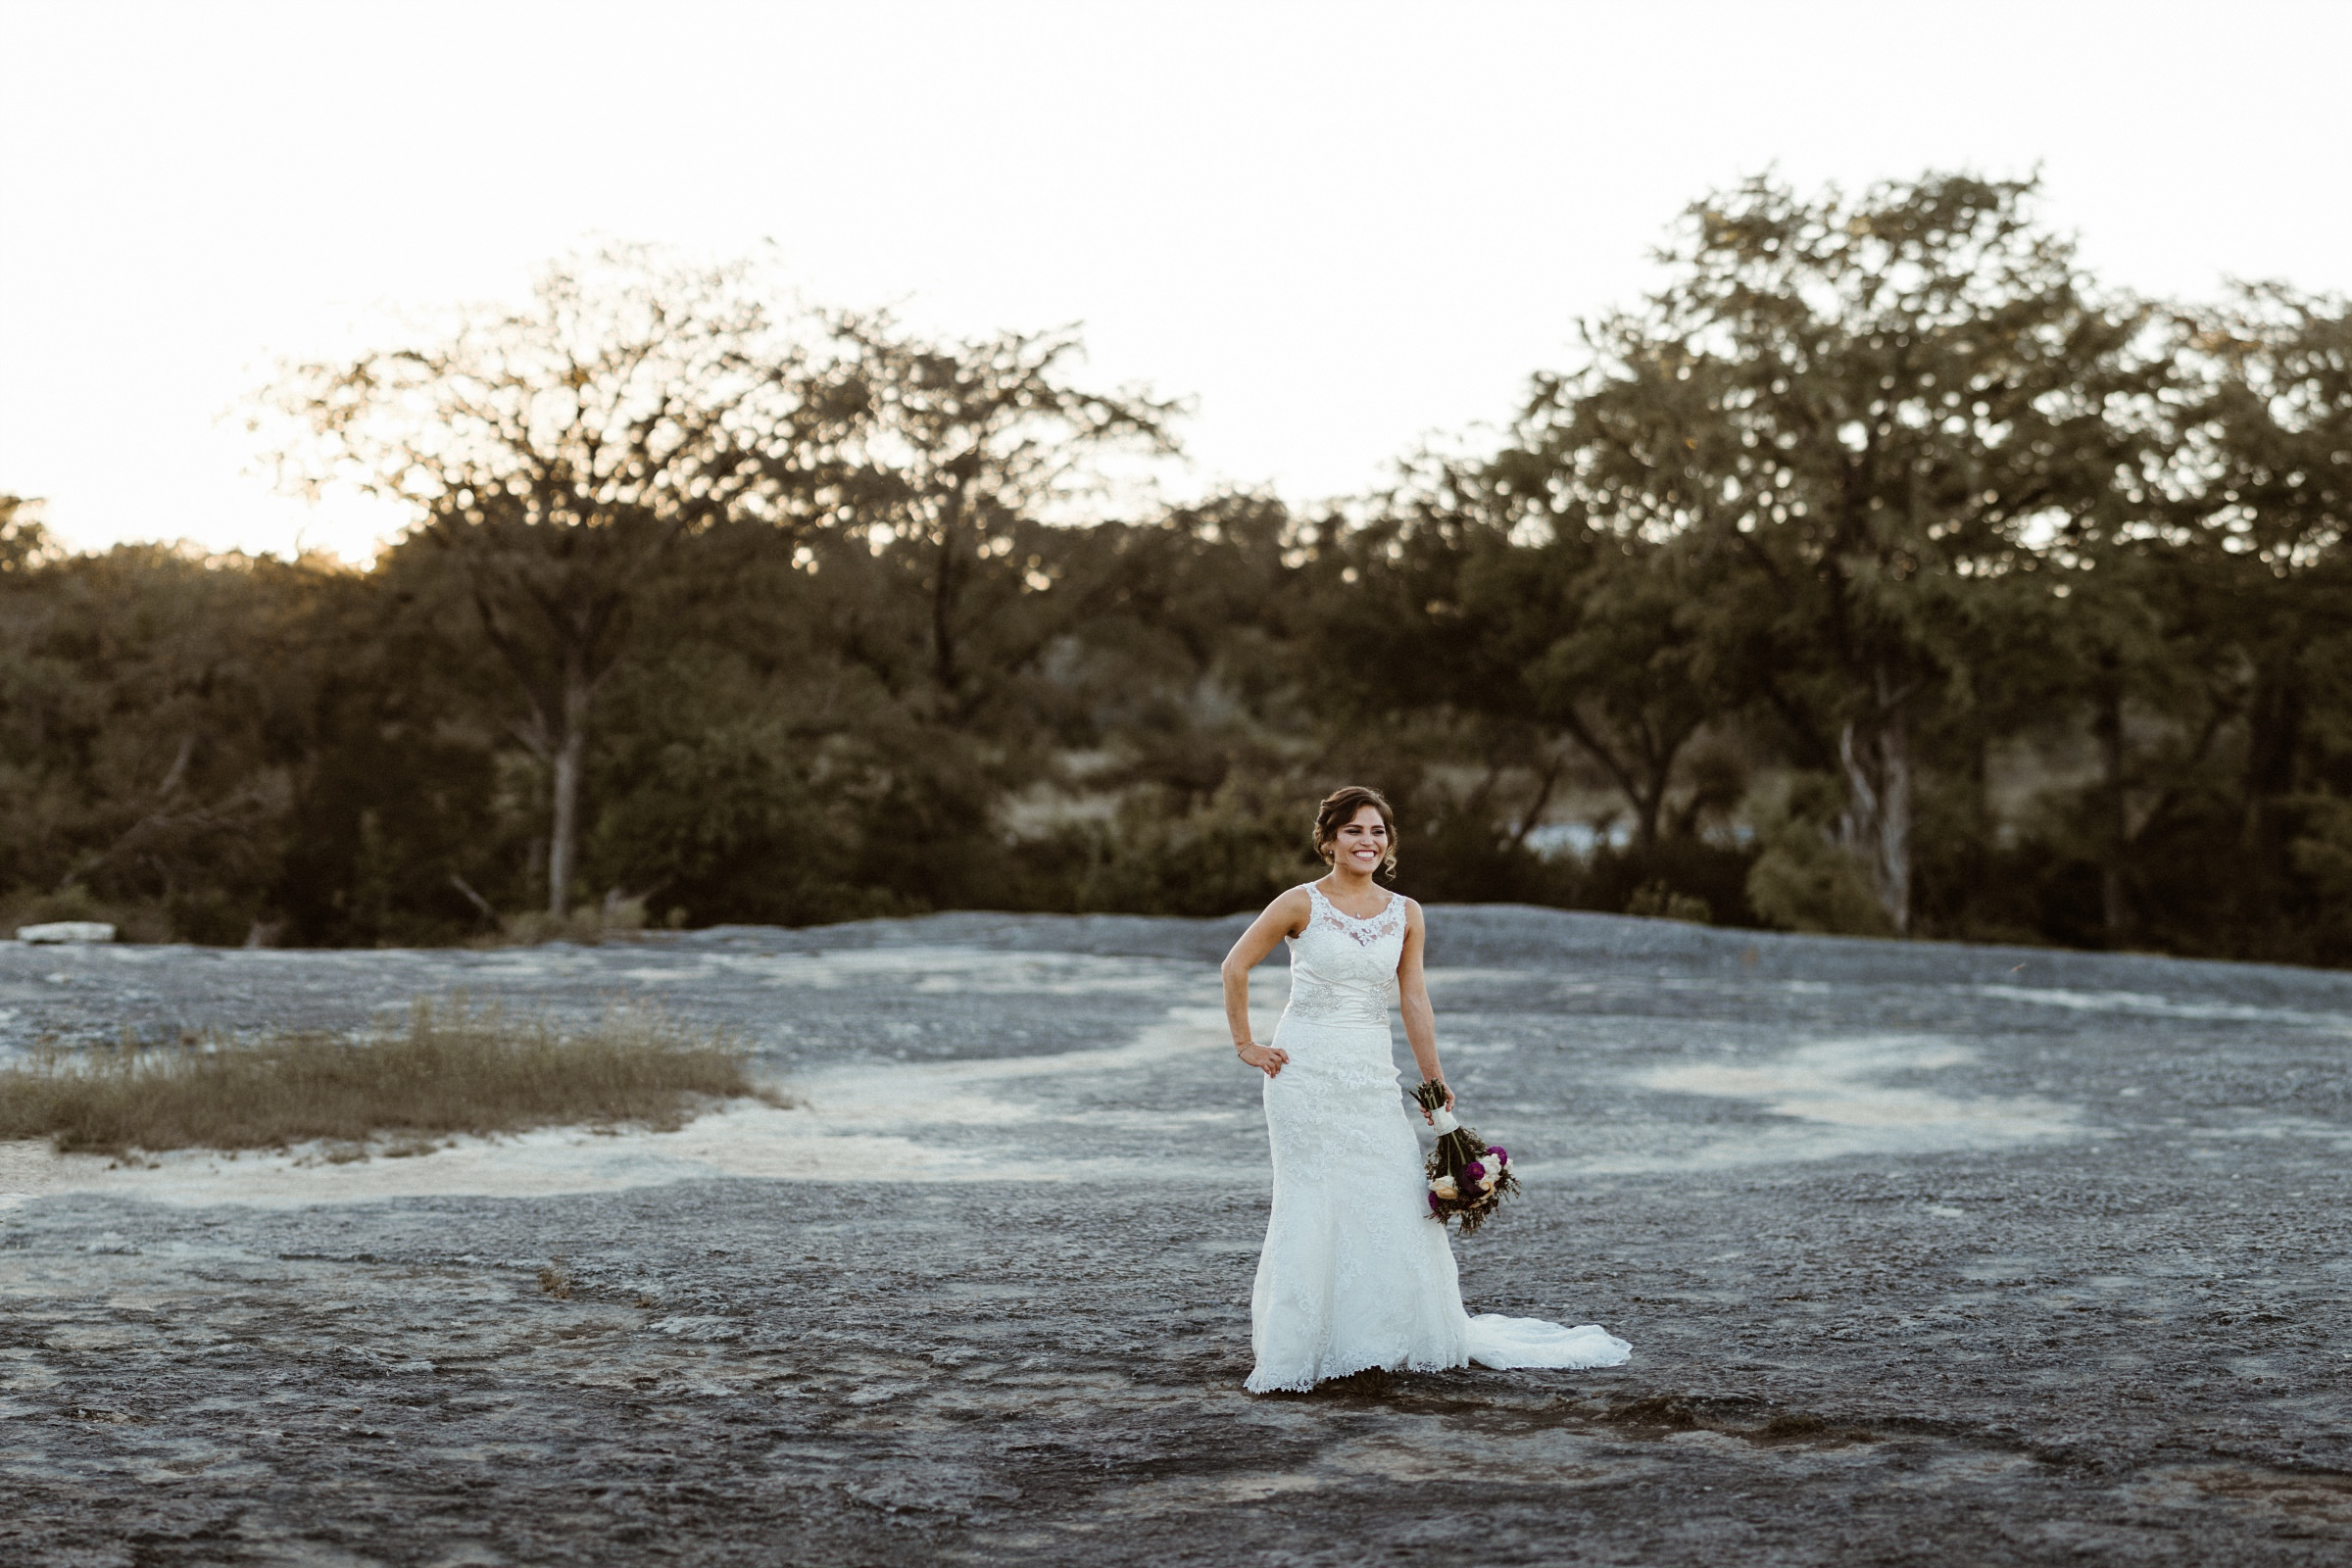 Austin Bridal Photography at McKinney Falls